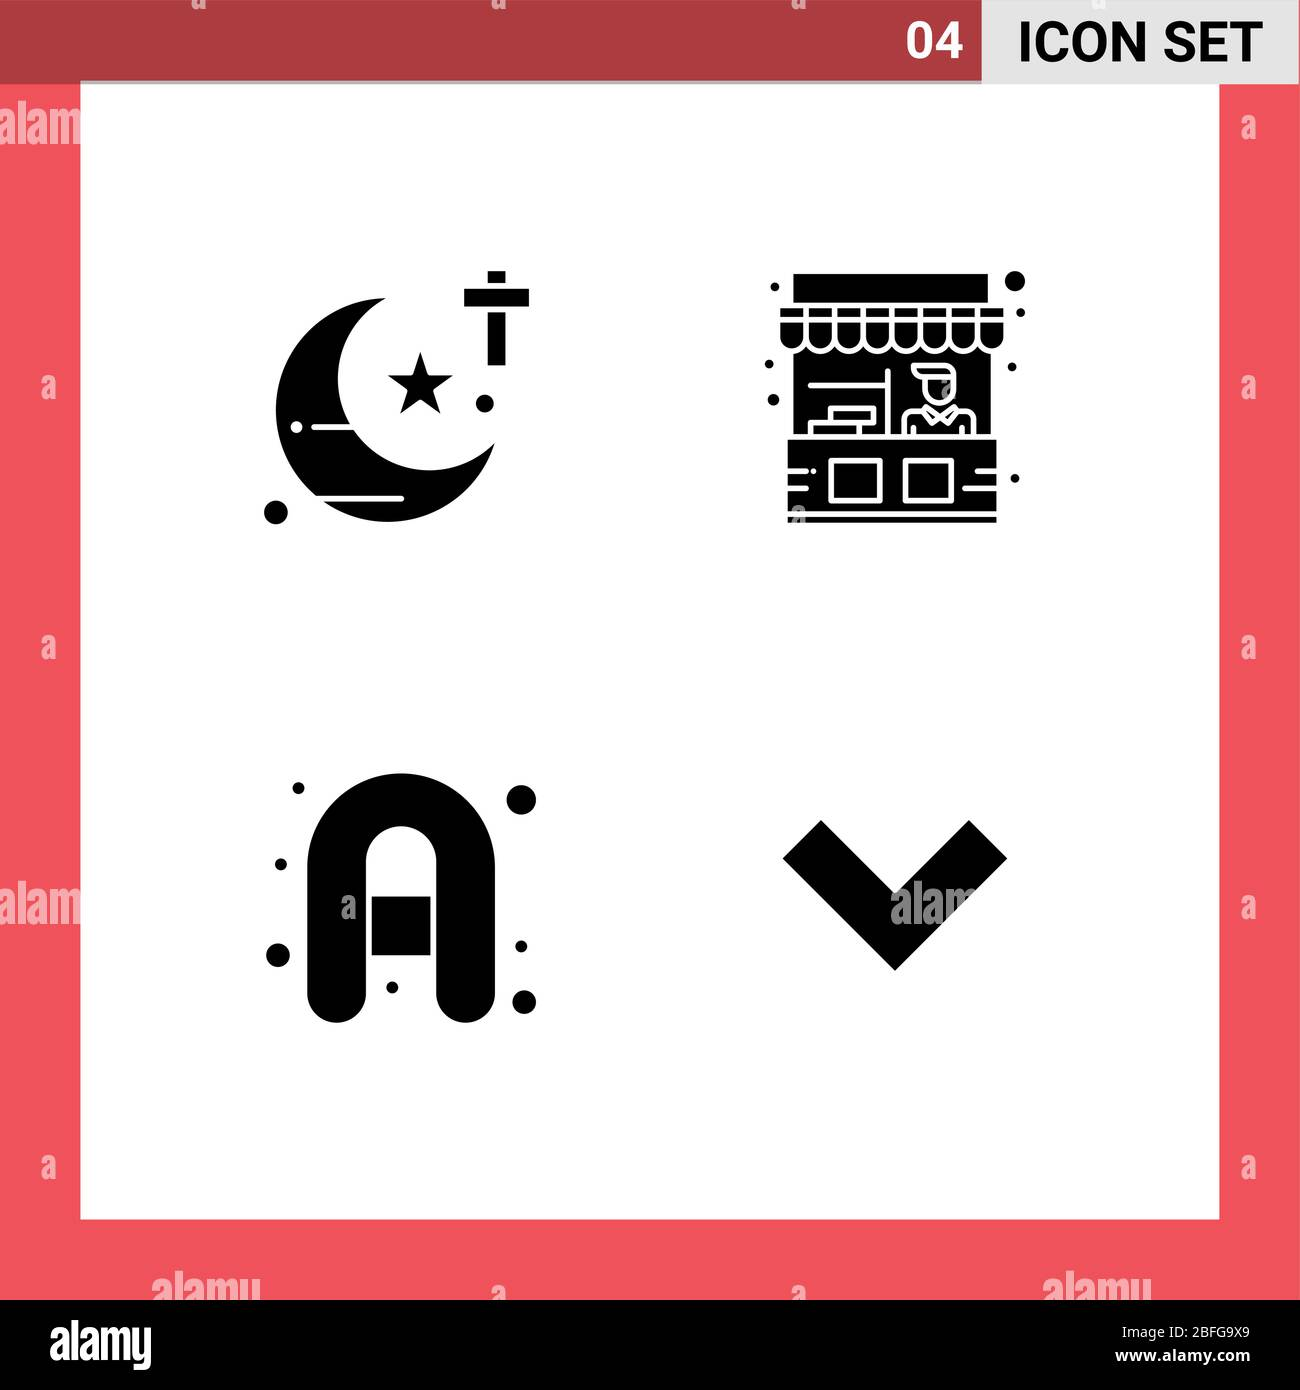 Universal Solid Glyphs Set For Web And Mobile Applications Religion Camping Theology Stand Arrow Editable Vector Design Elements Stock Vector Image Art Alamy Download 17,837 bow and arrow free vectors. alamy